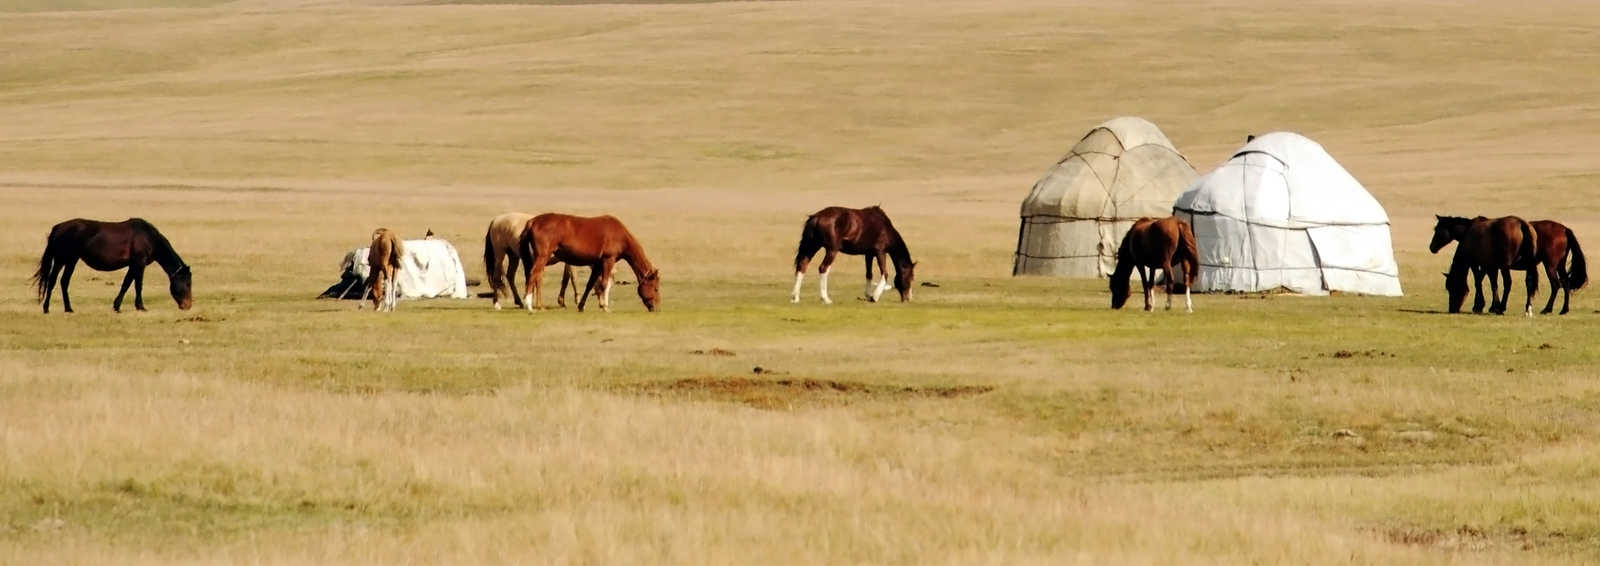 Horses and yurts in the Tien Shan Mountains, Kyrgyzstan